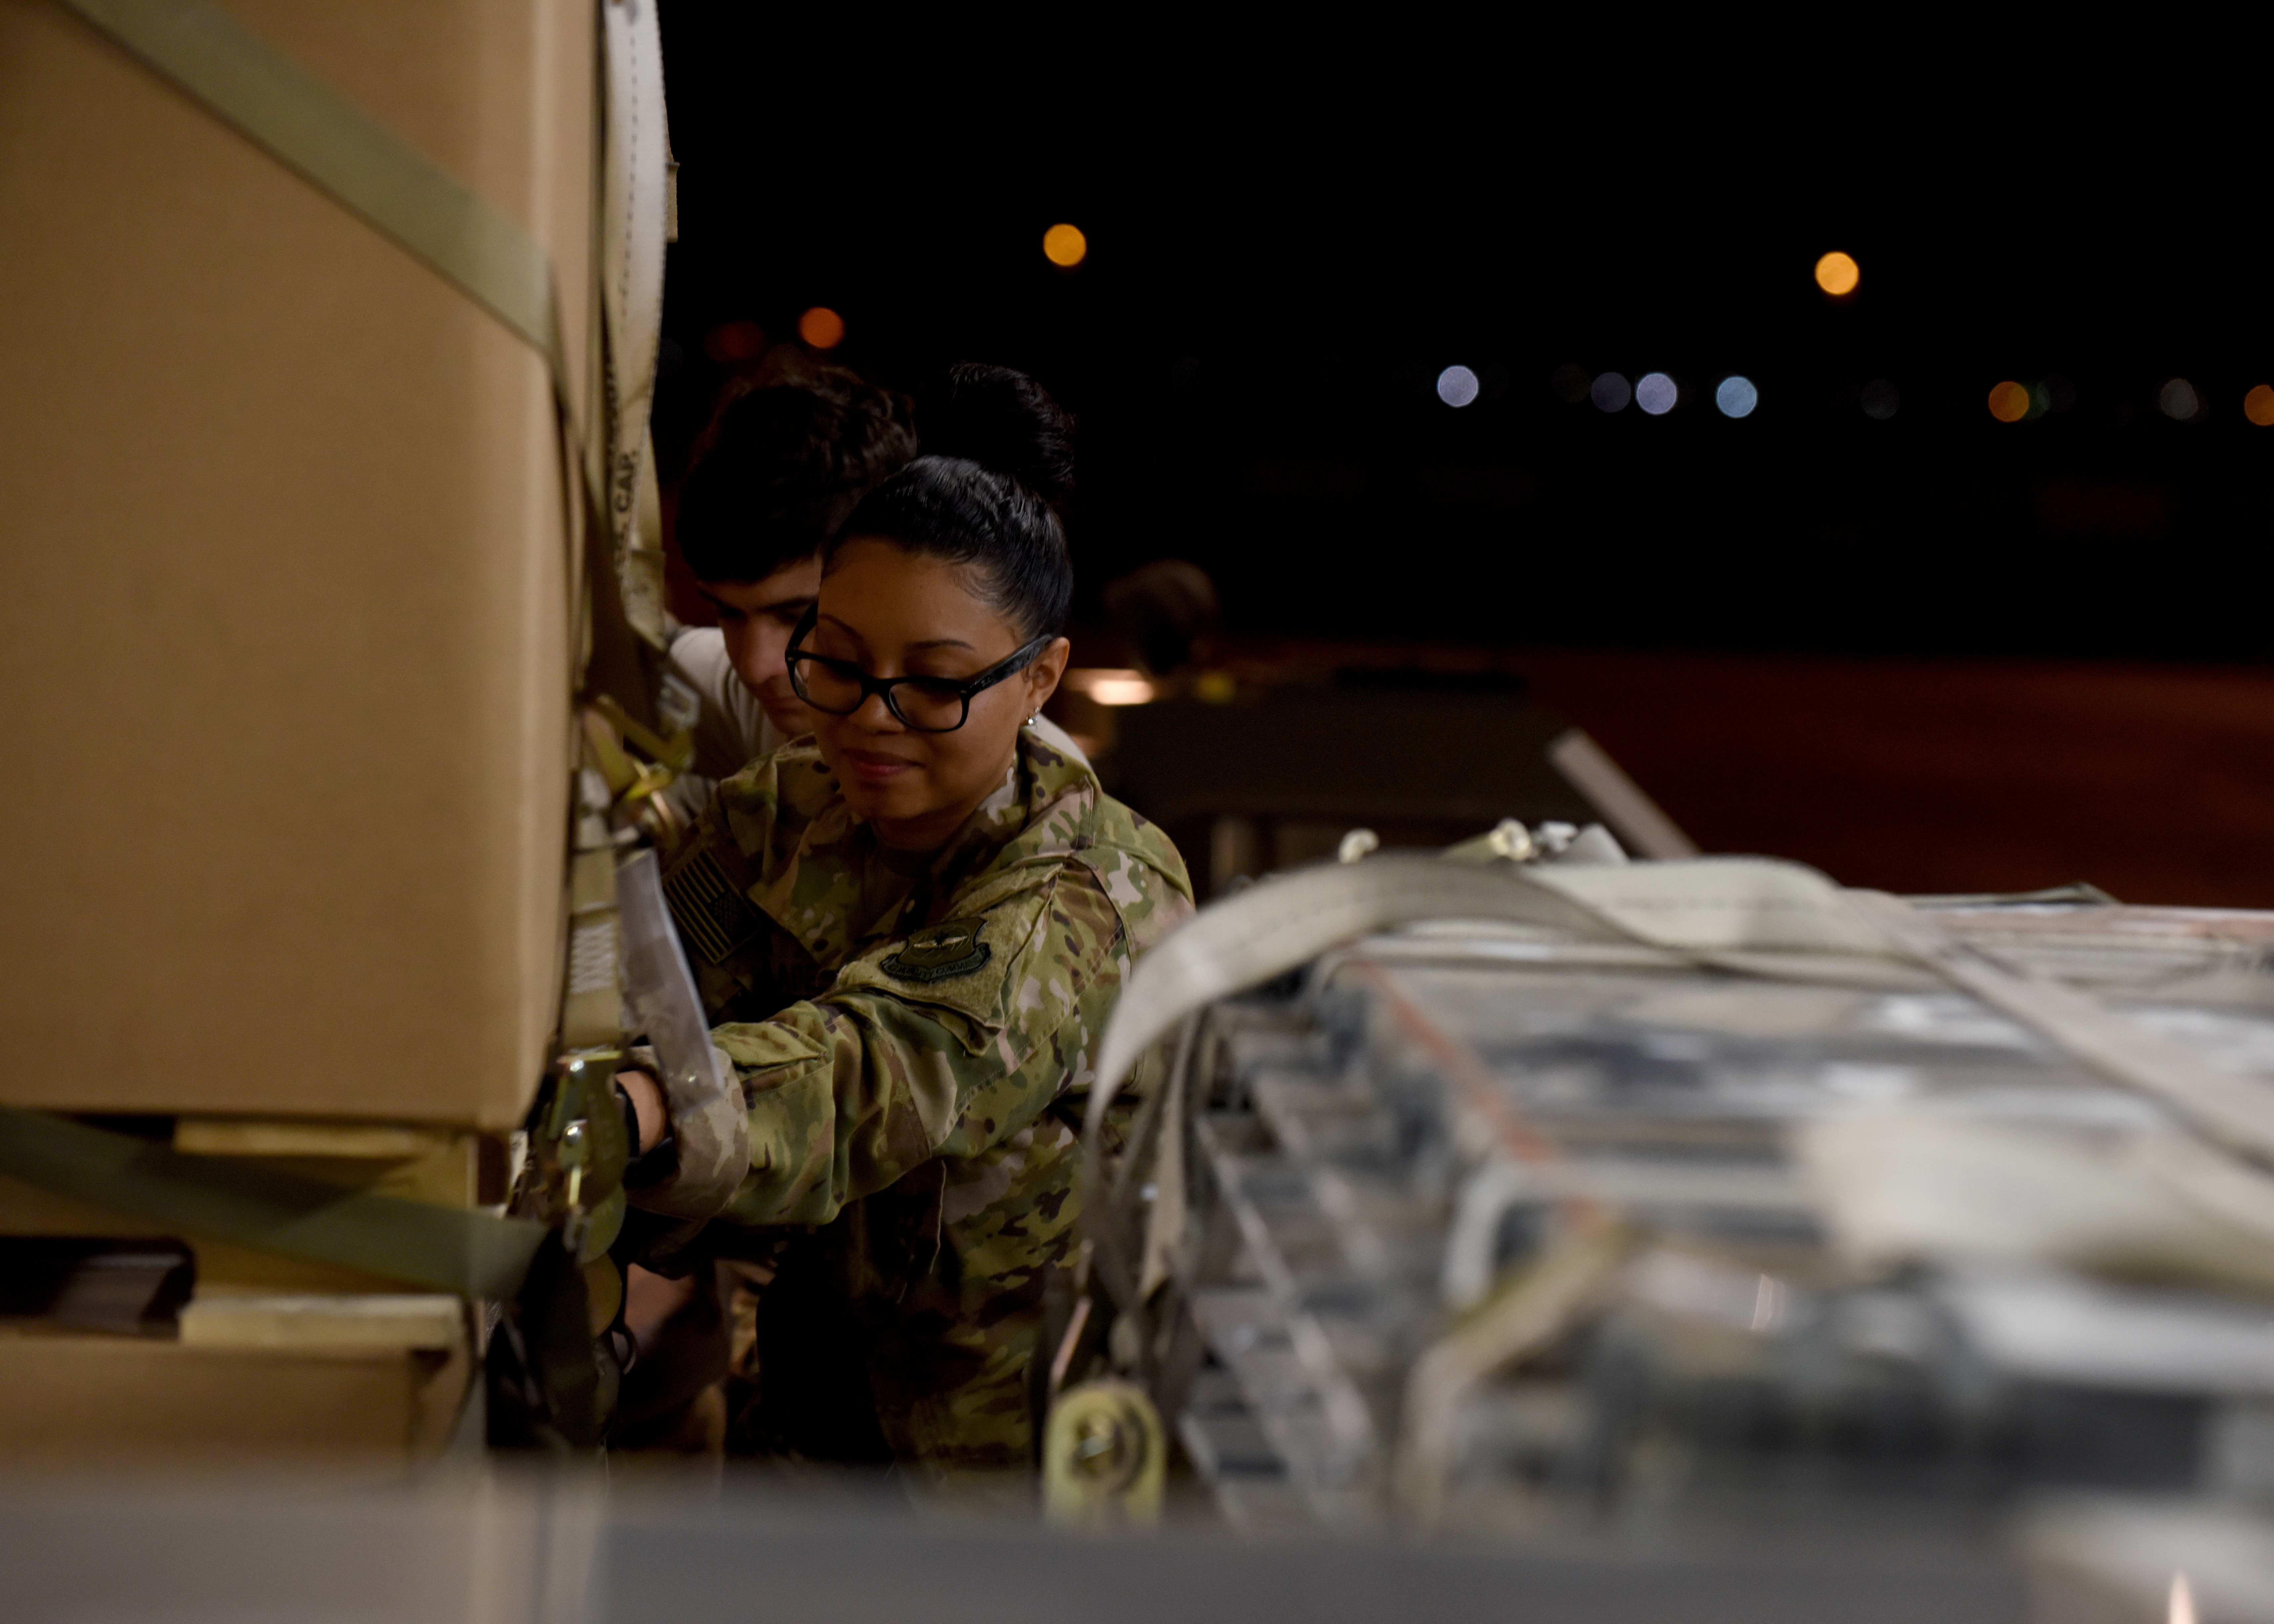 U.S. Air Force Airman 1st Class Kyra Blades, a loadmaster from the 16th Airlift Squadron, Joint Base Charleston, South Carolina, supporting Combined Joint Task Force-Horn of Africa (CJTF-HOA), shifts cargo inside a U.S. Air Force C-17 Globemaster III to create space for U.S. Agency for International Development (USAID) supplies at Camp Lemonnier, Djibouti, April 2, 2019, for the U.S. Department of Defense's (DoD) humanitarian relief effort in the Republic of Mozambique and surrounding areas following Cyclone Idai. CJTF-HOA, which is leading the DoD relief effort, transported 17,400 pounds of USAID food, a forklift, a 25K loader and palletizing equipment on the C-17 to Mozambique following a call for assistance from the USAID Disaster Assistance Response Team. (U.S. Air Force photo by Staff Sgt. Franklin R. Ramos)